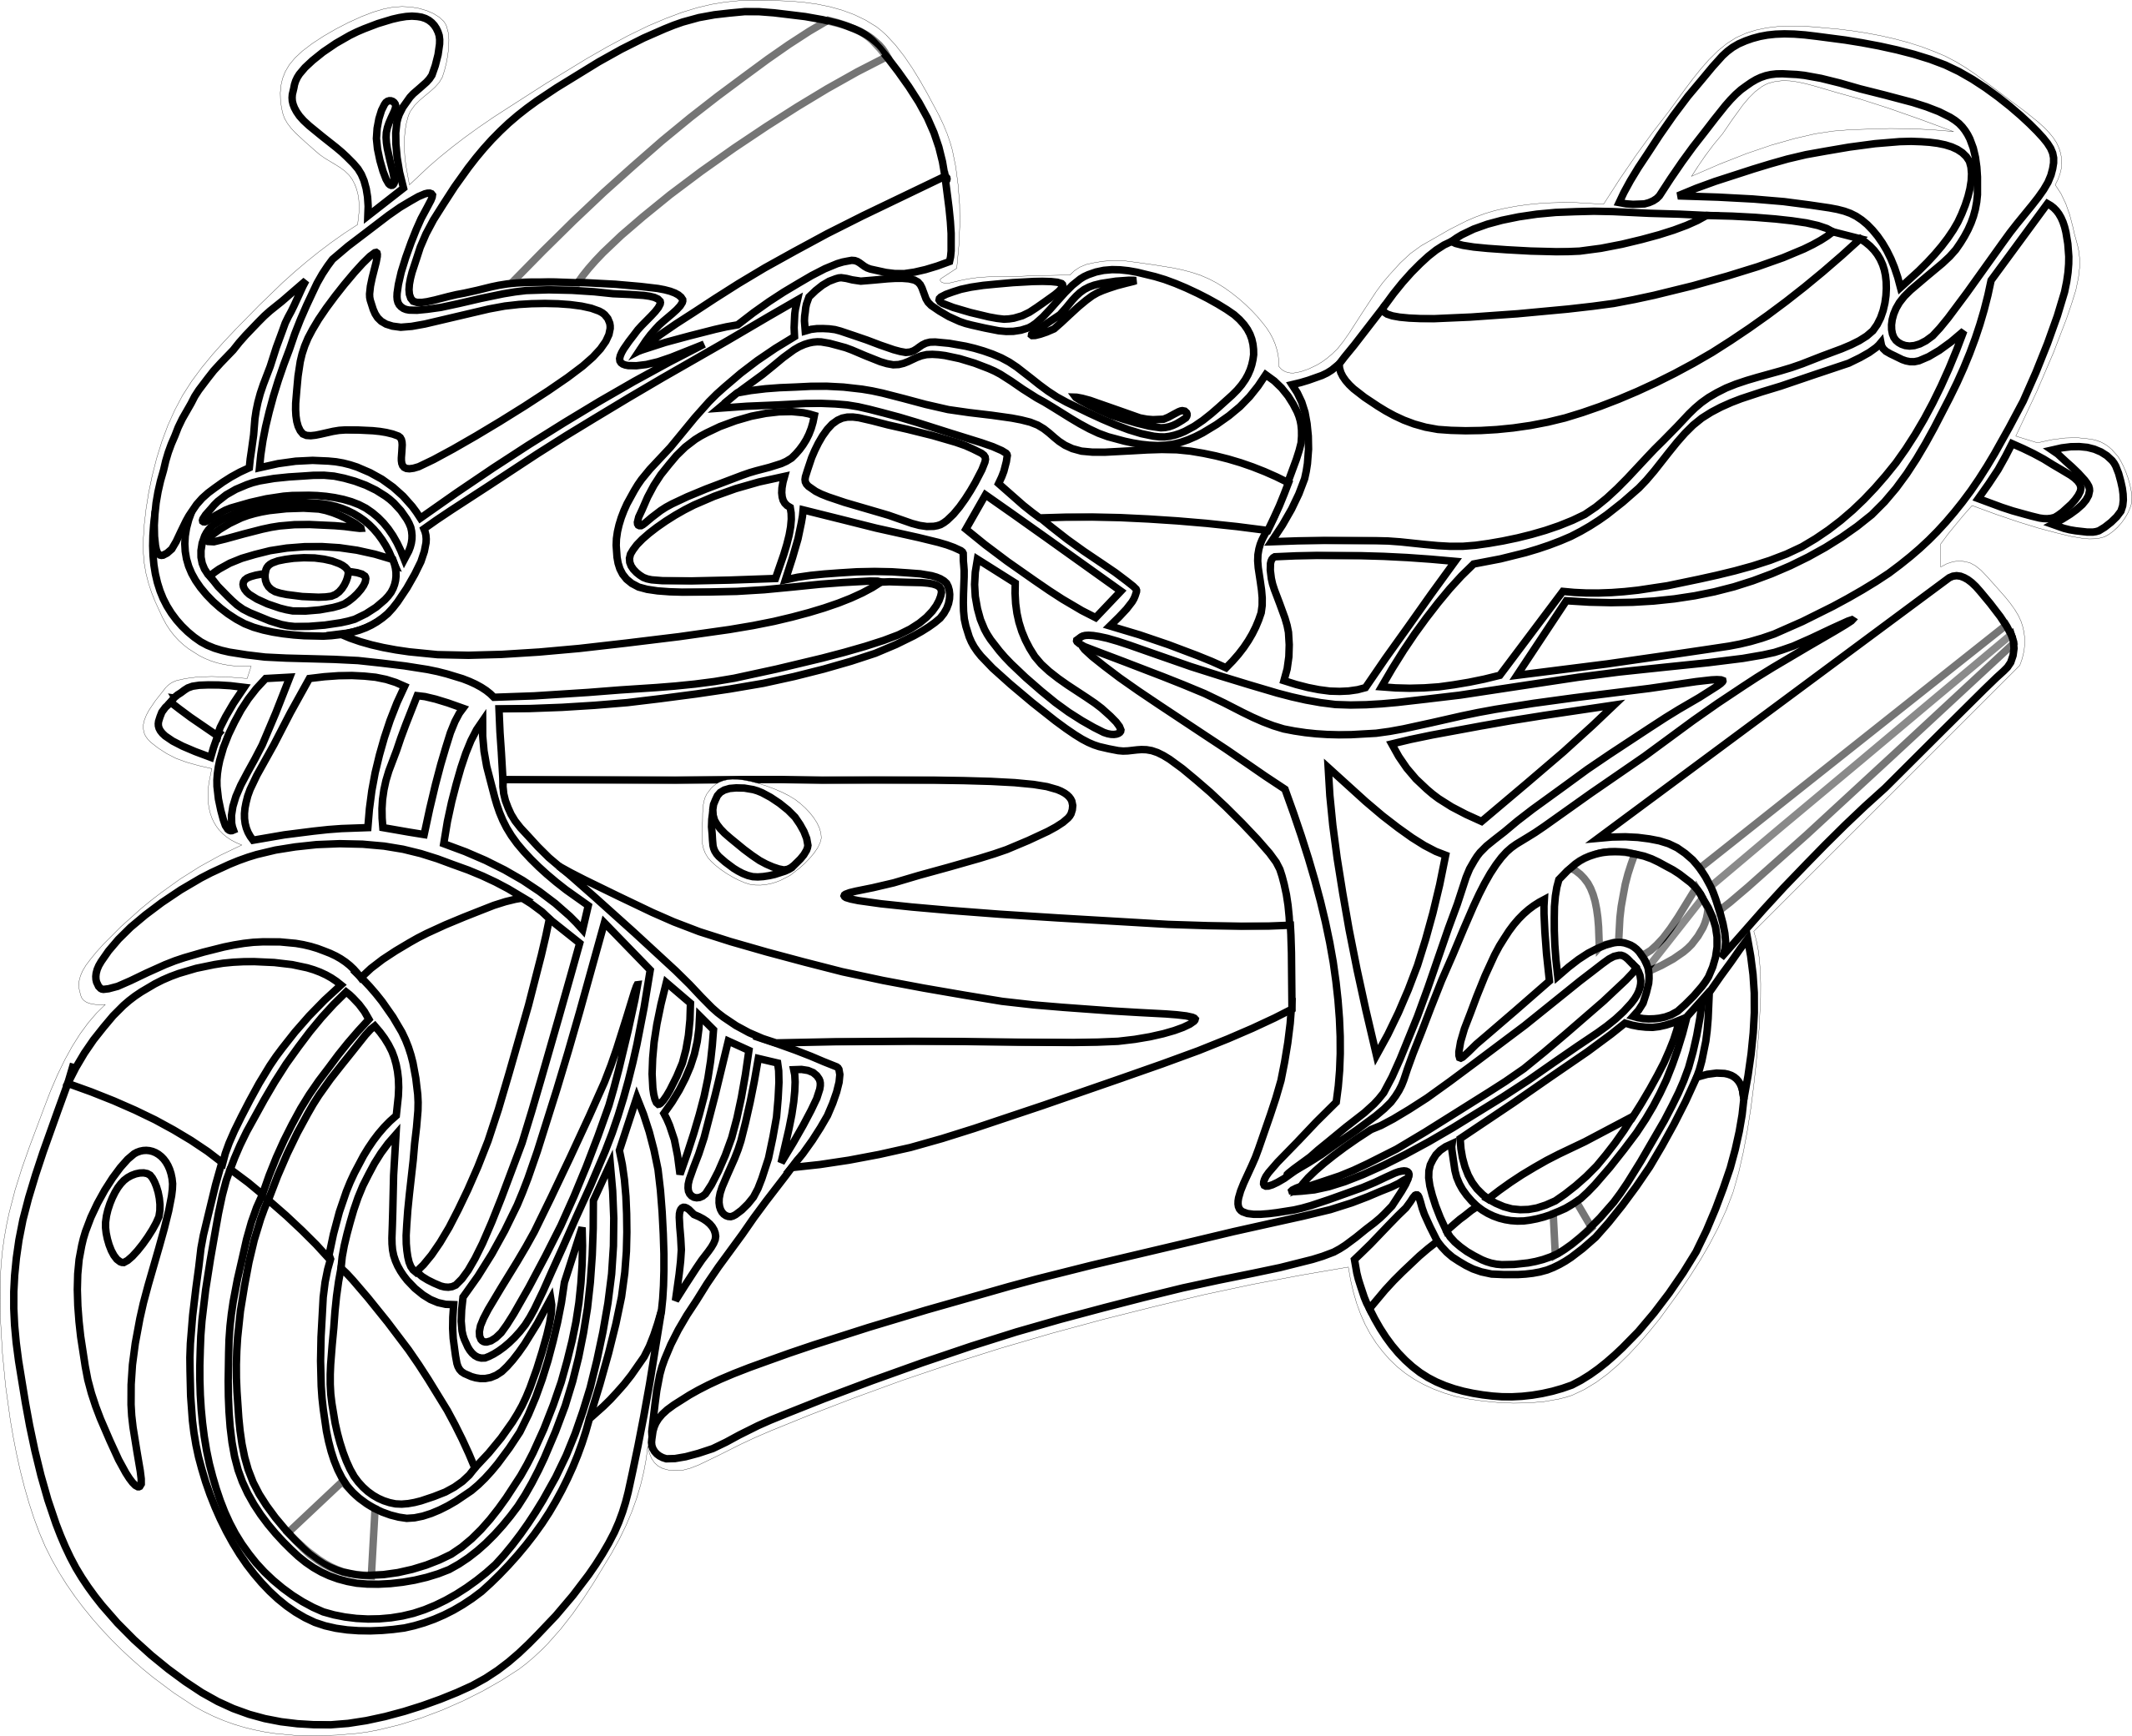 Book Clipart Black And White-book clipart black and white-1